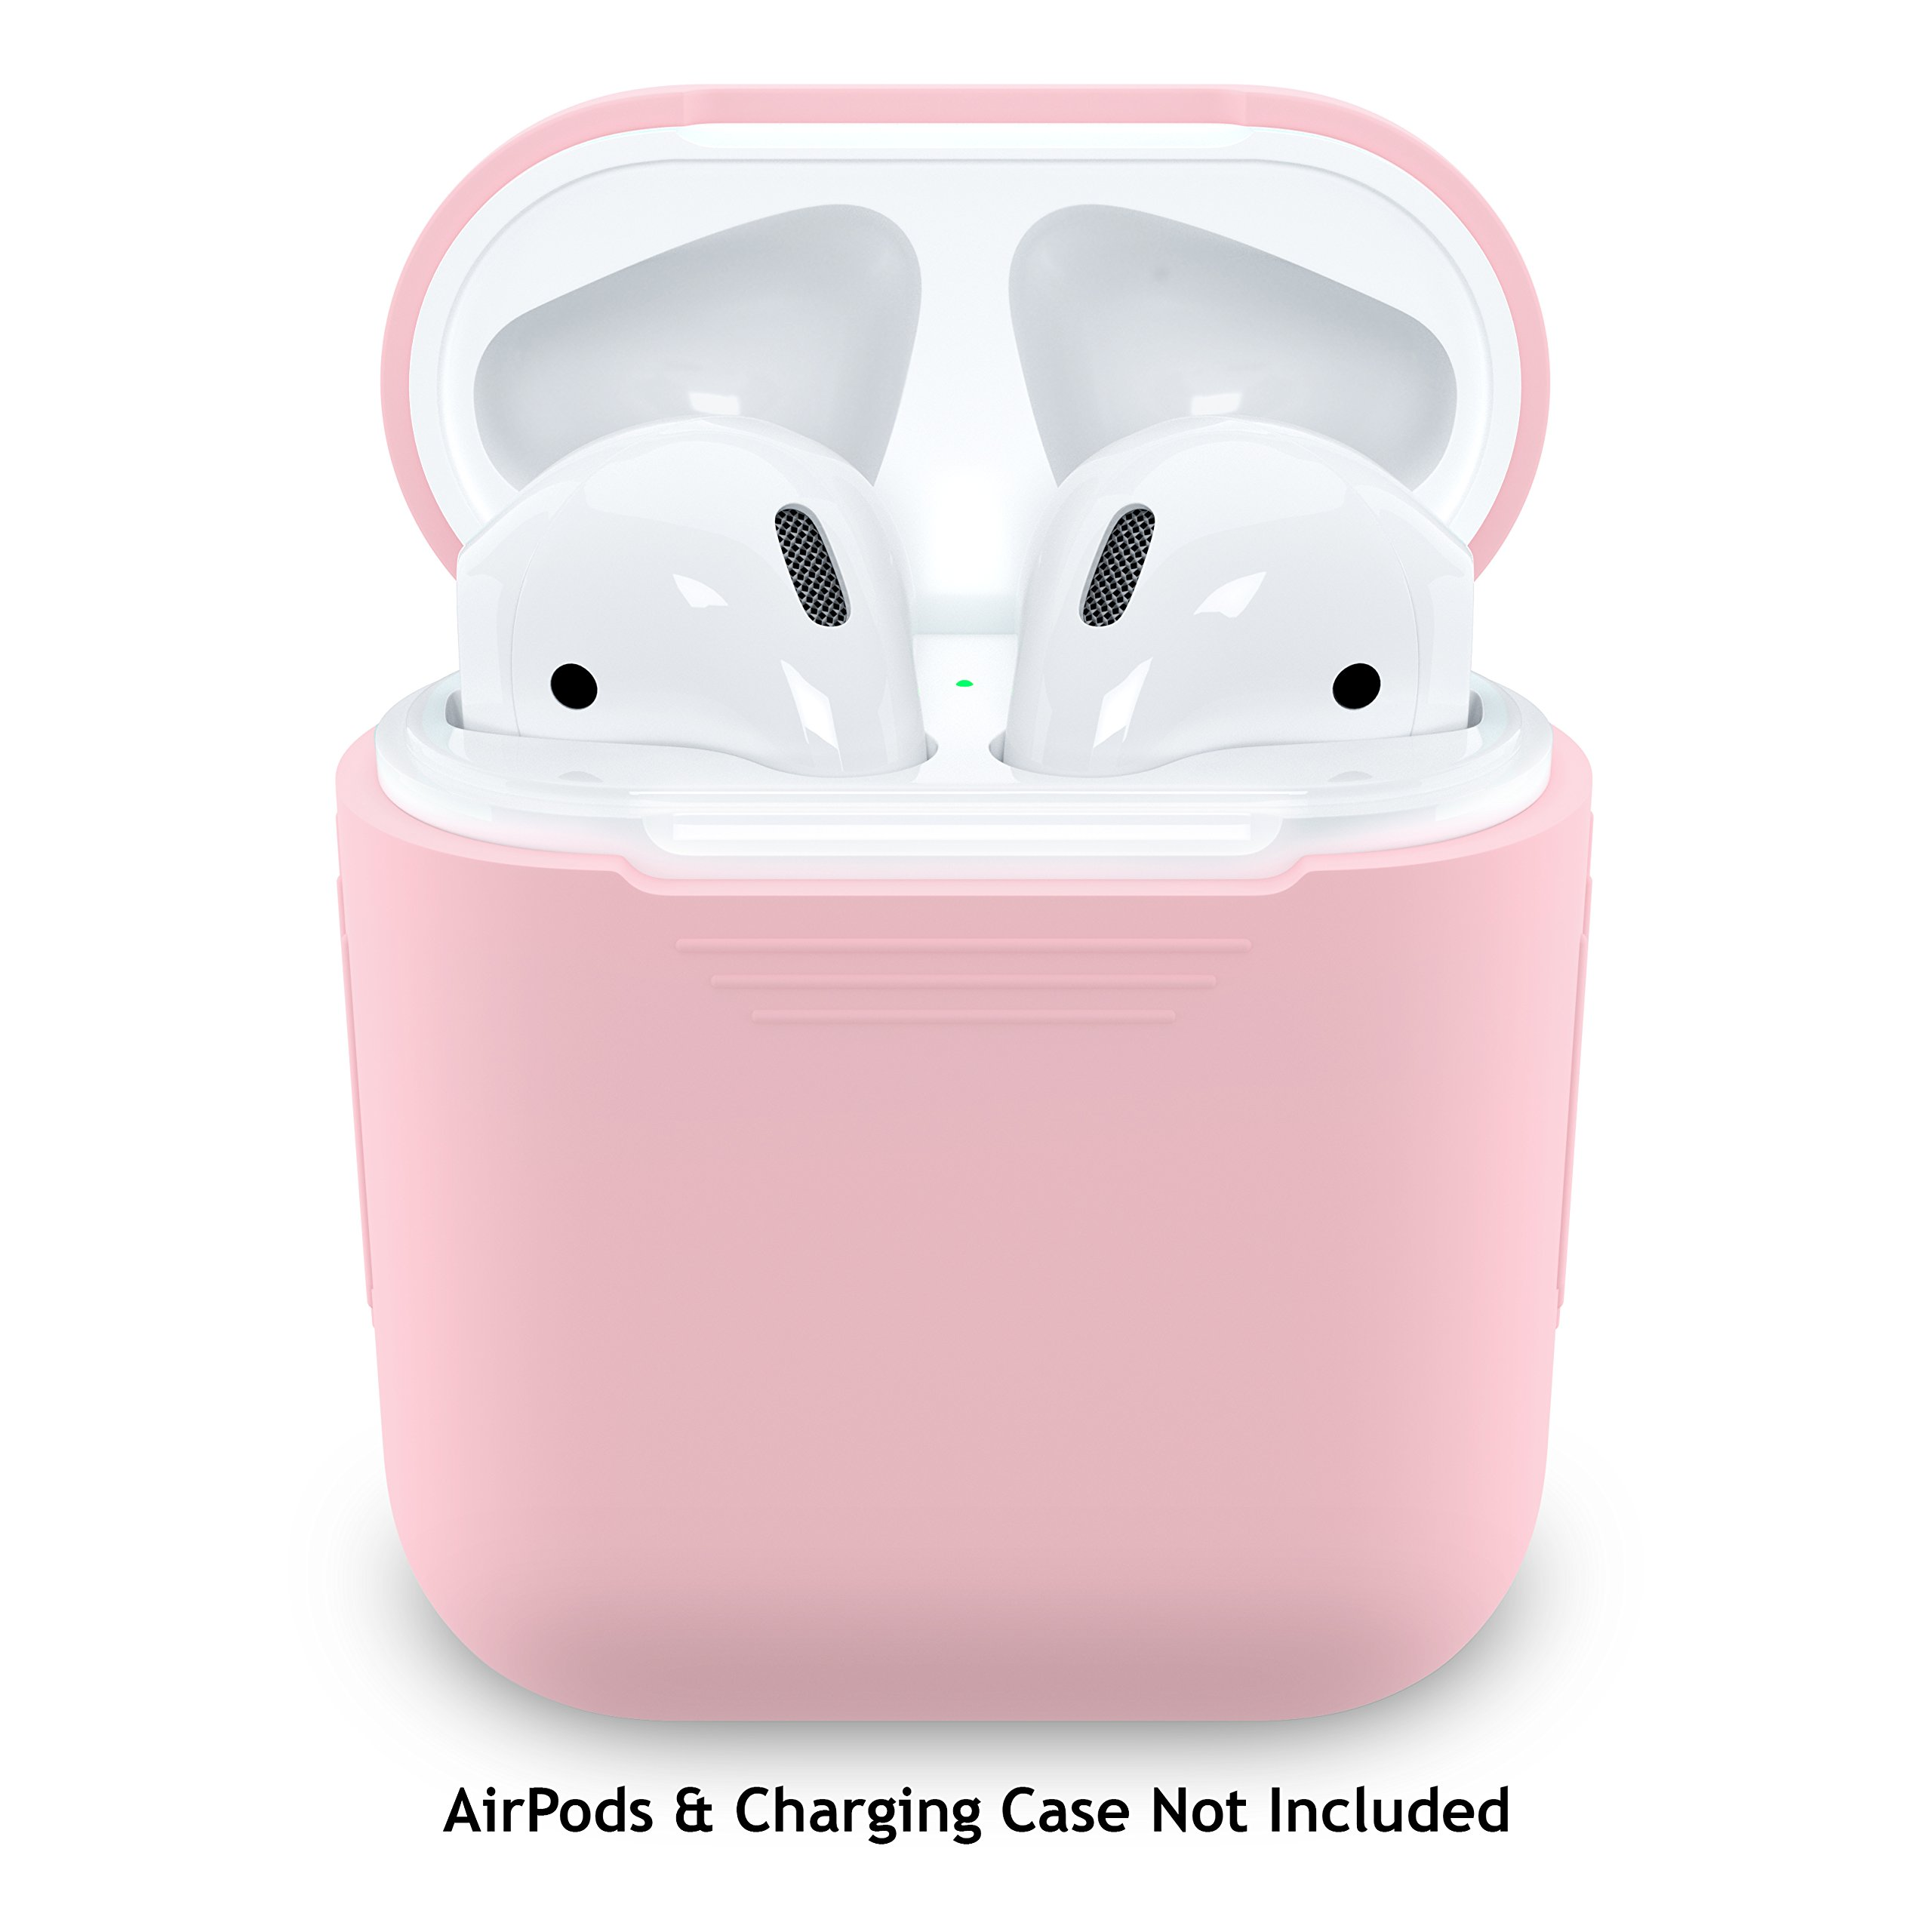 PodSkinz AirPods Case Protective Silicone Cover and Skin for Apple Airpods Charging Case (Pretty in Pink)